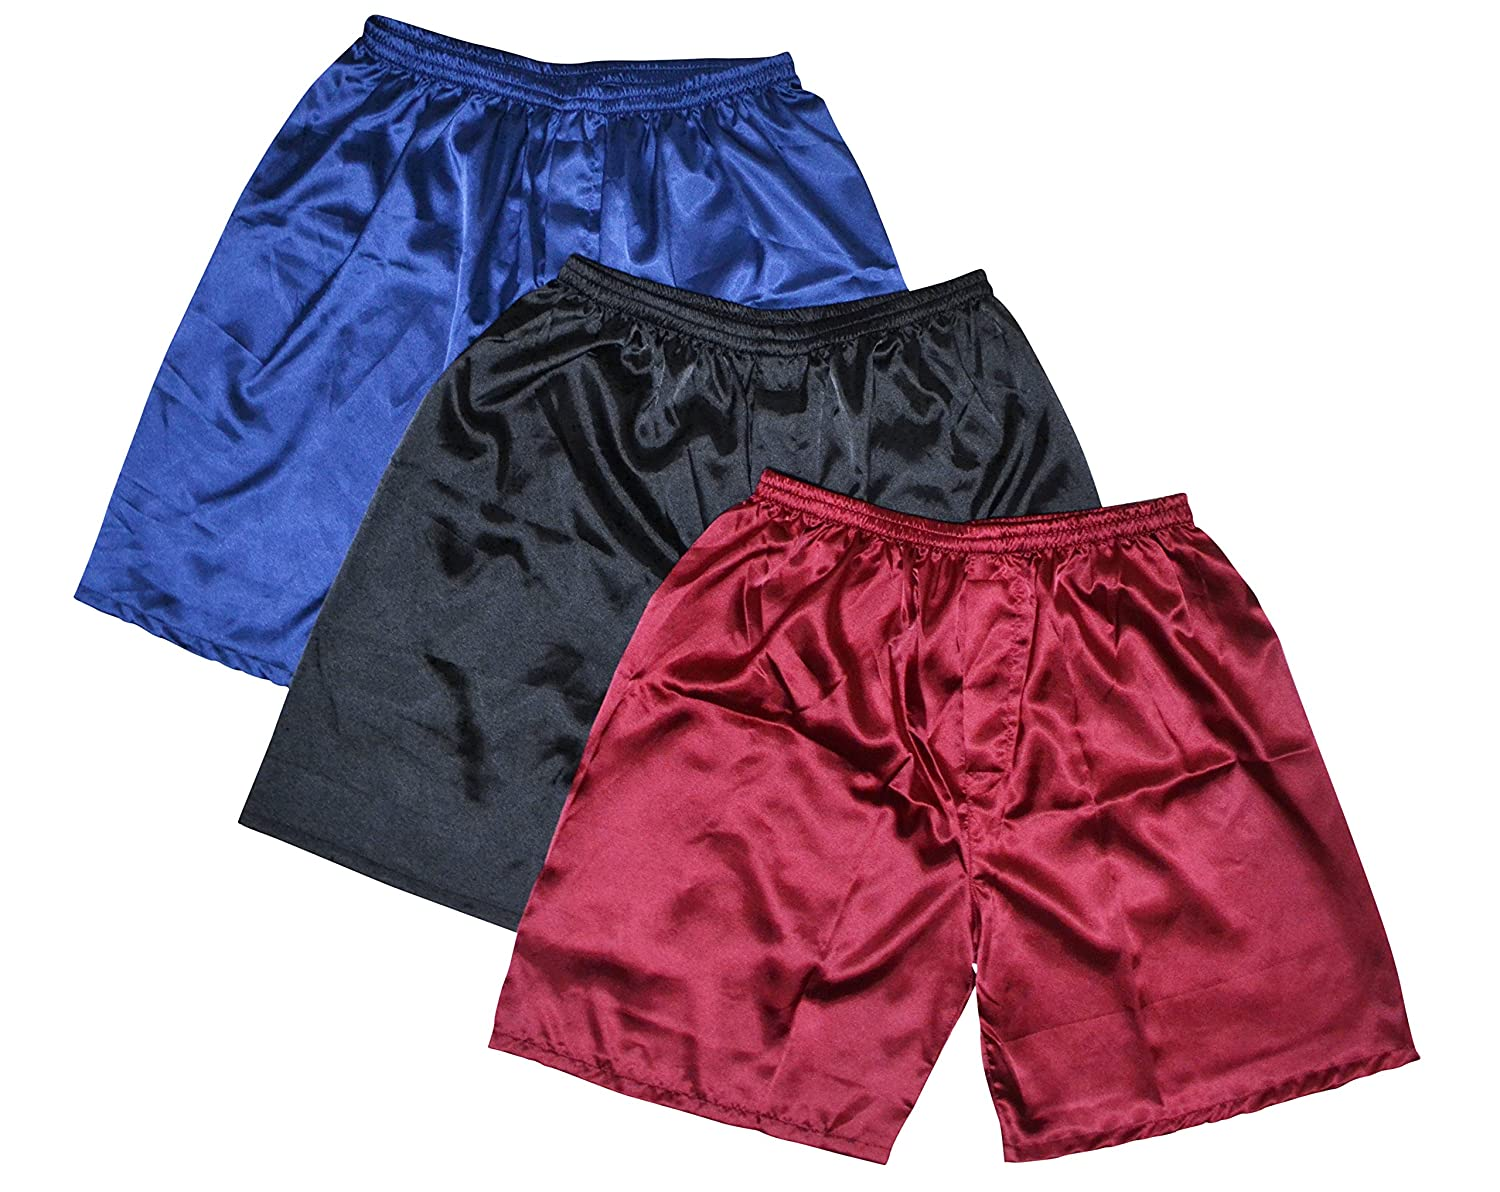 Tony & Candice Men's Satin Boxers Shorts Combo Pack Underwear, (3-Pack)